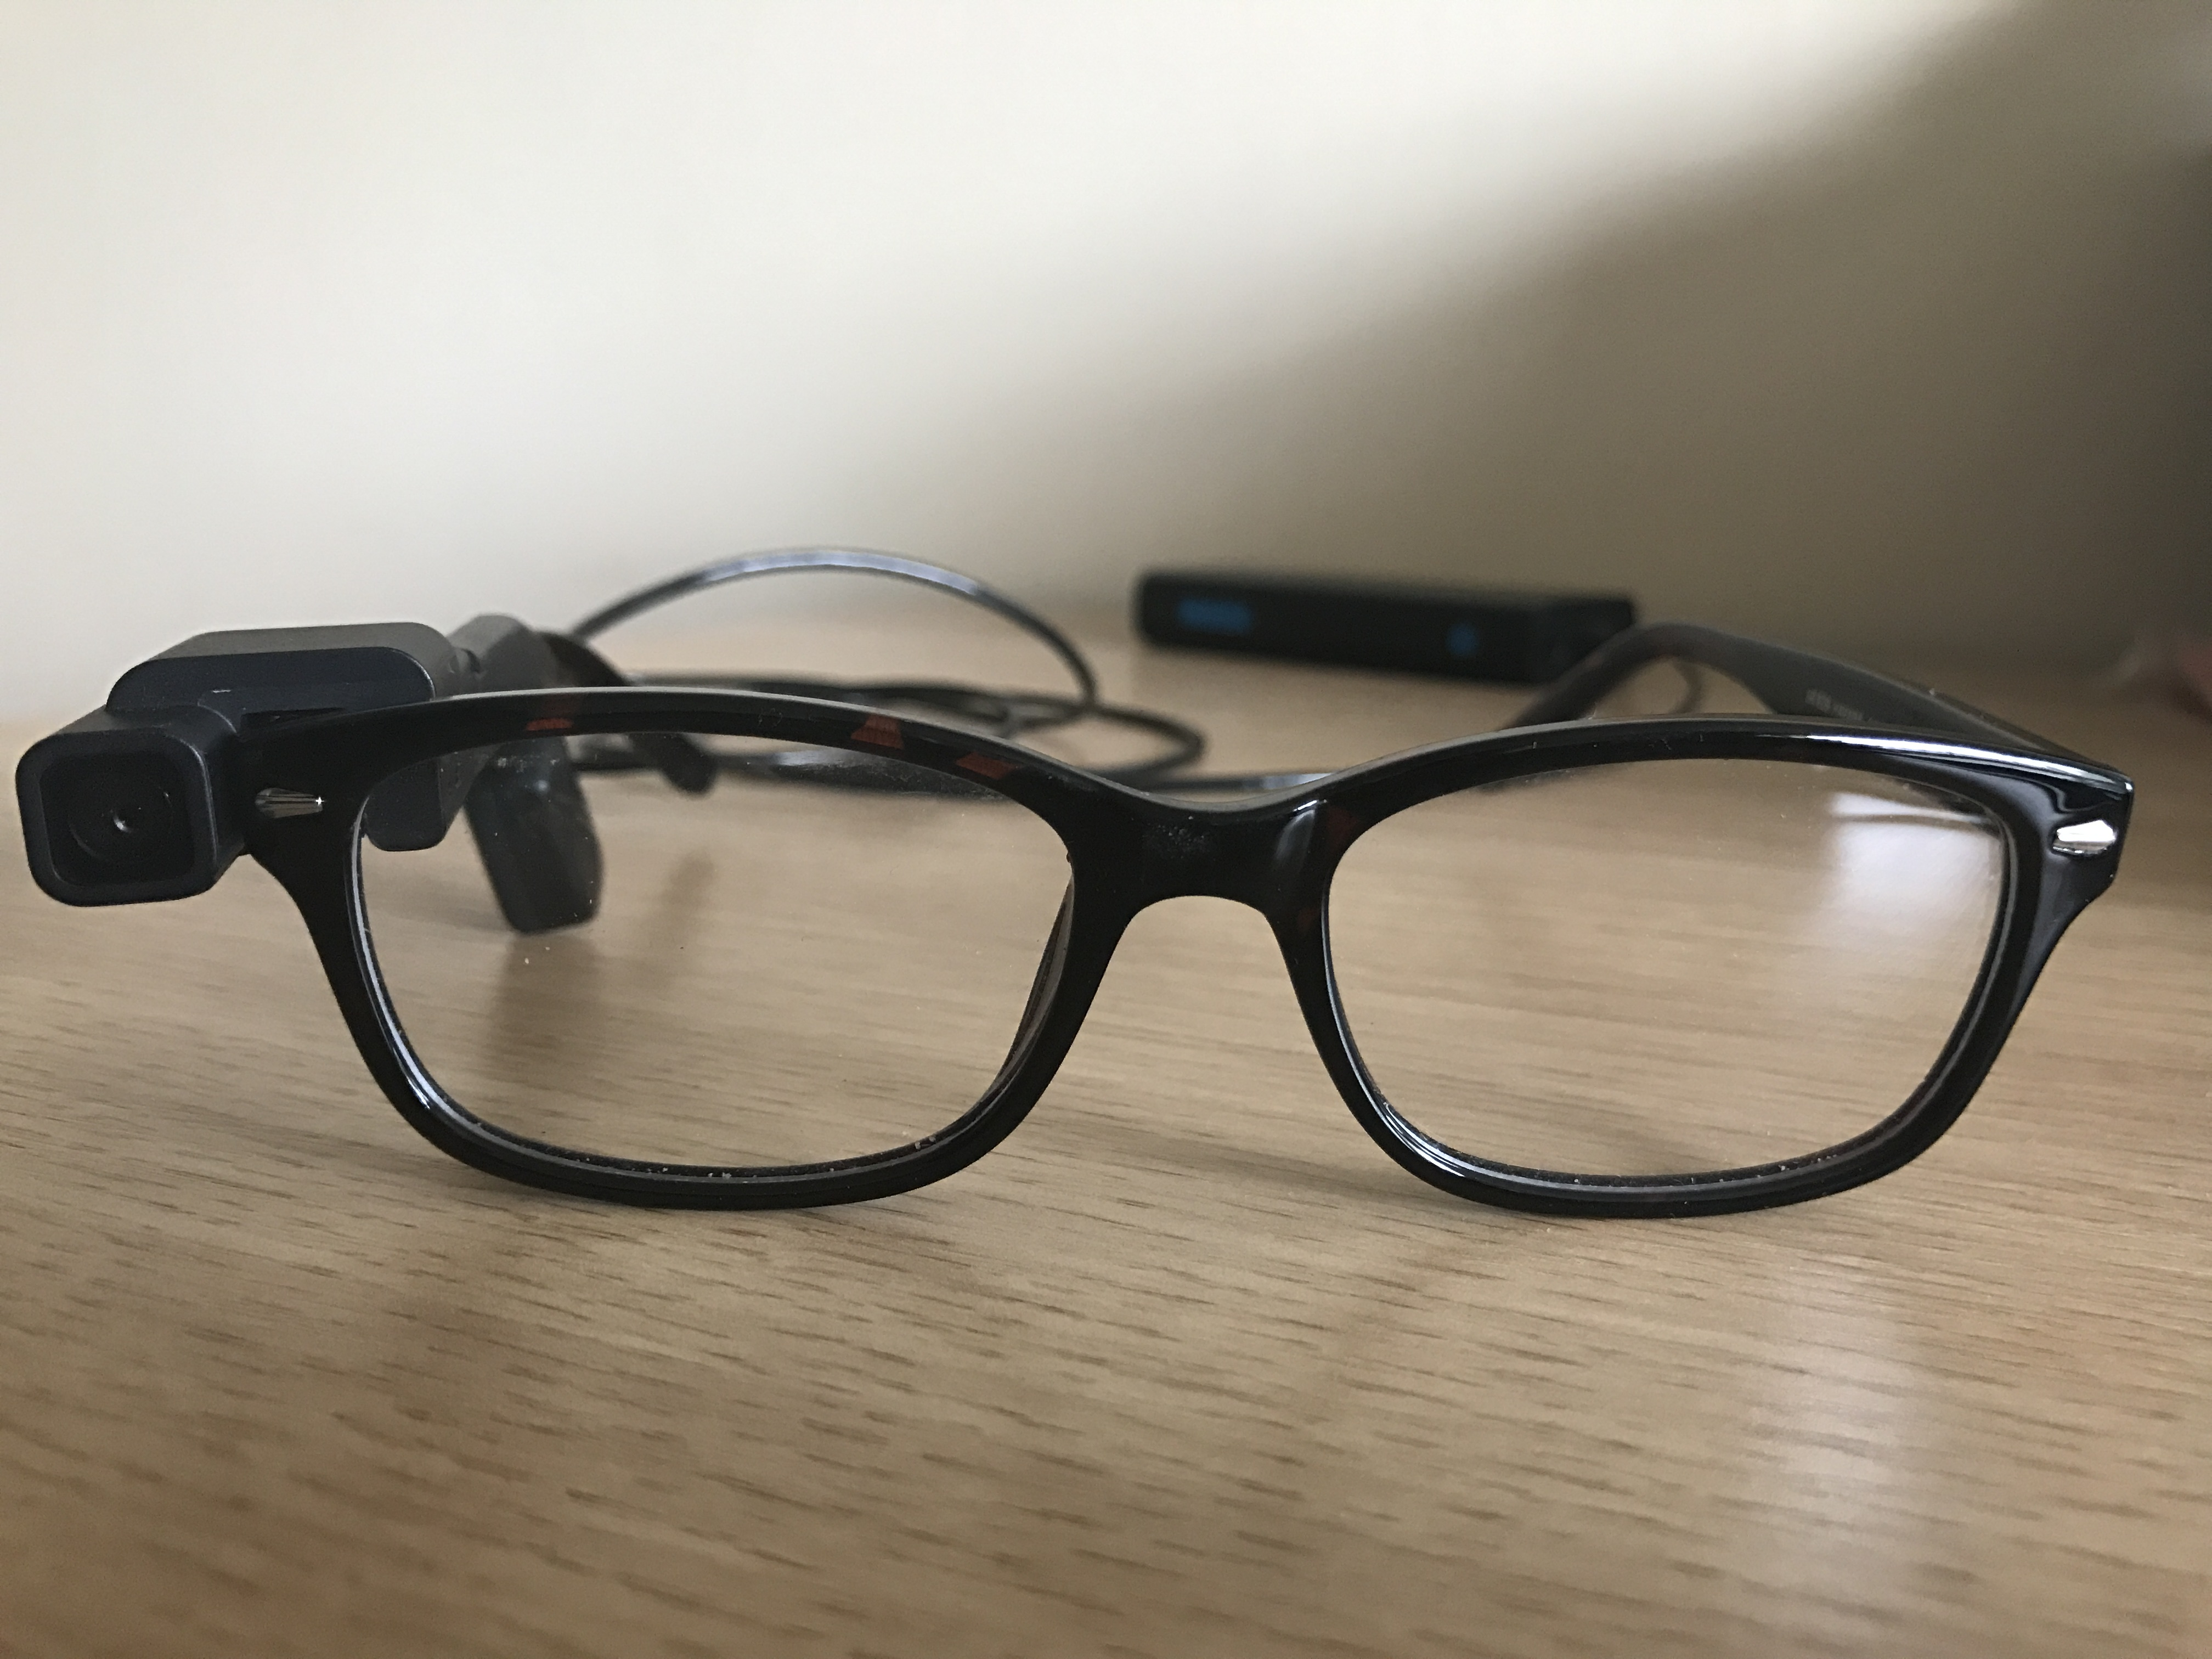 Photo shows an OrCam attached to a pair of glasses